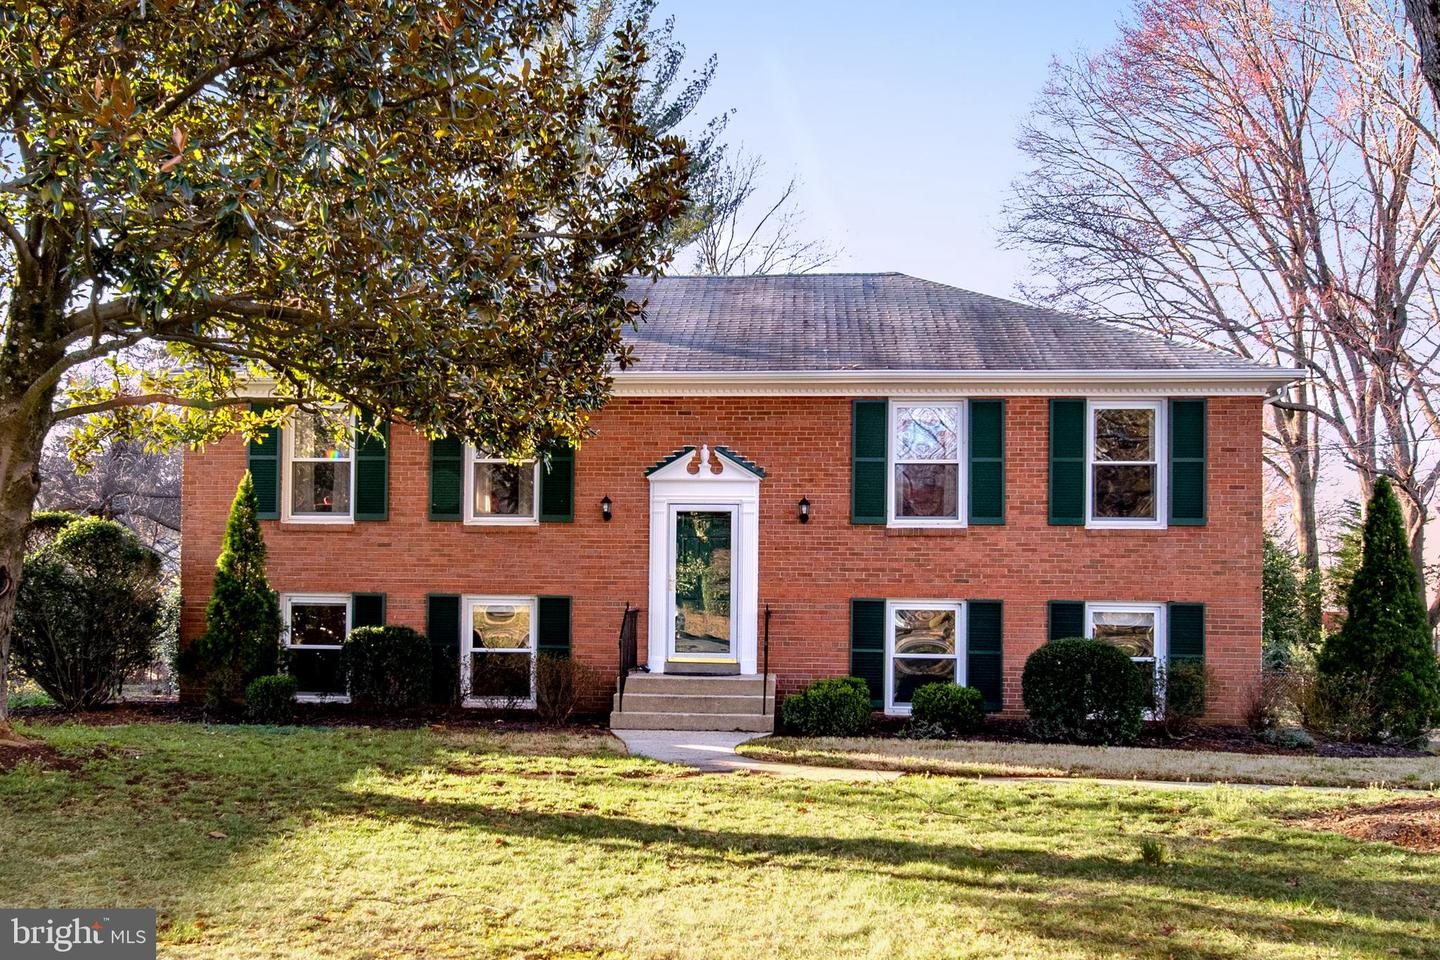 Additional photo for property listing at 2303 Nordok Pl 2303 Nordok Pl Alexandria, Virginia 22306 United States